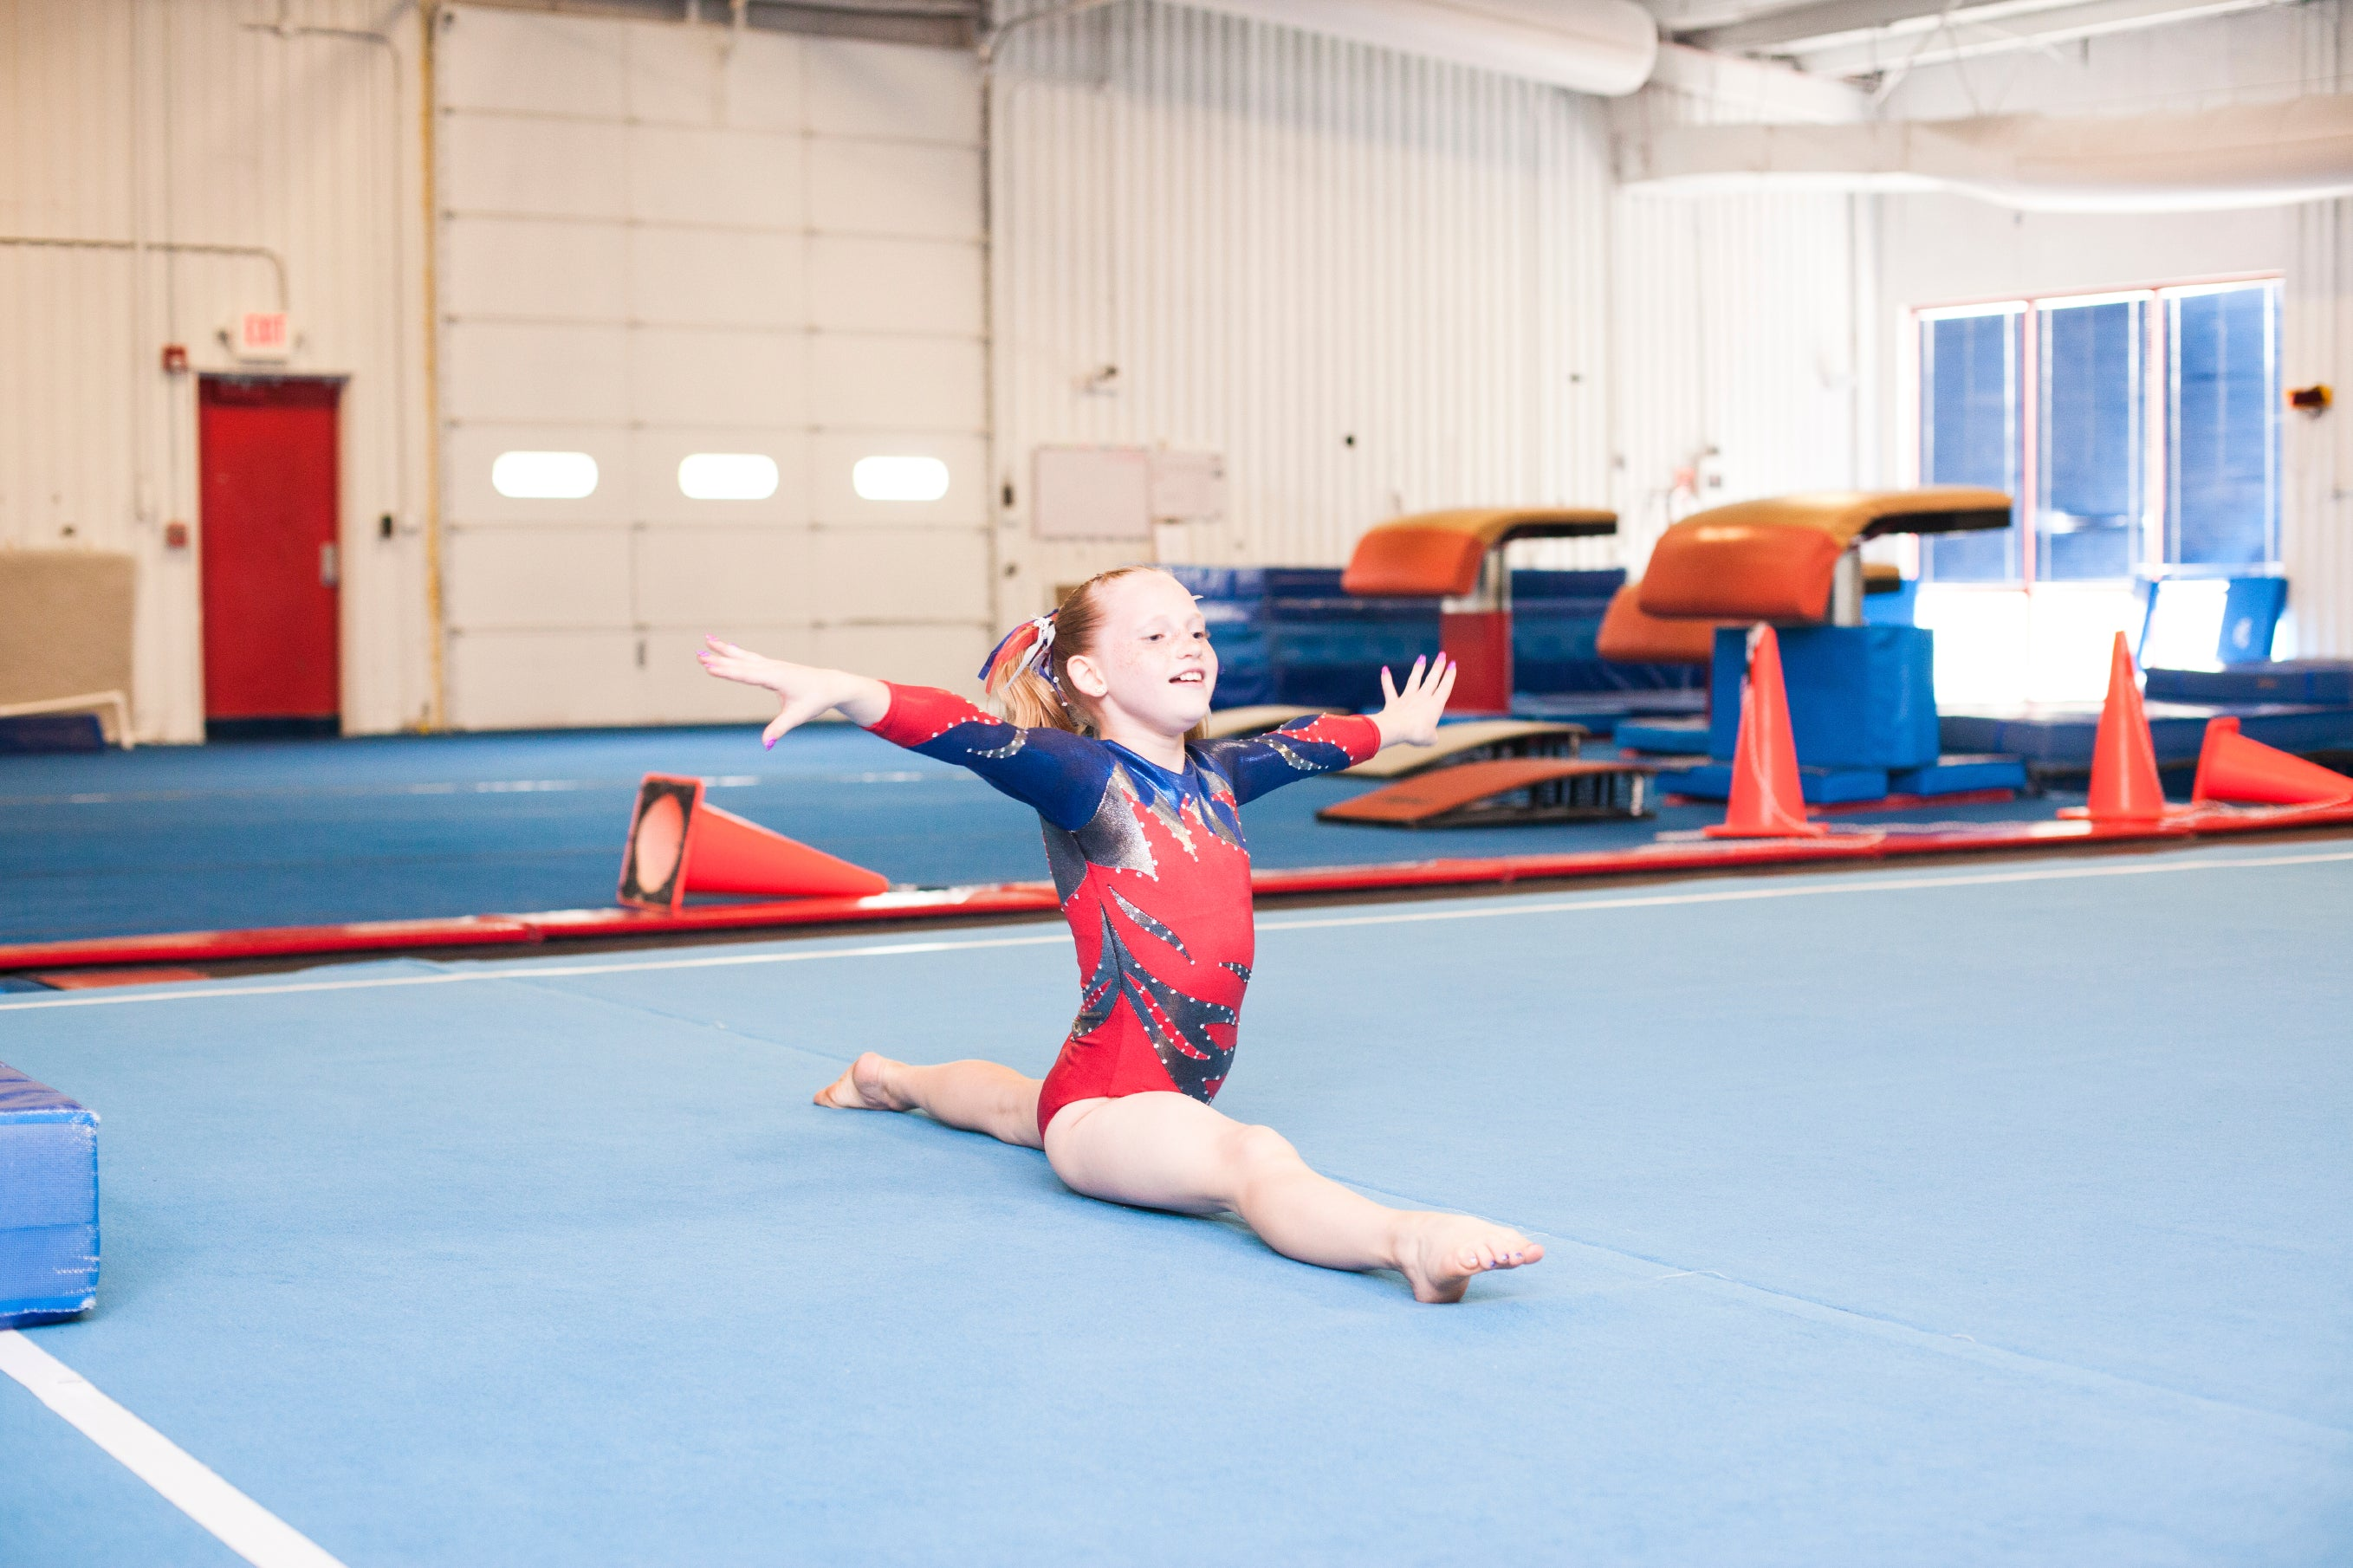 6 Reasons Why Gymnastics Is Great For Kids